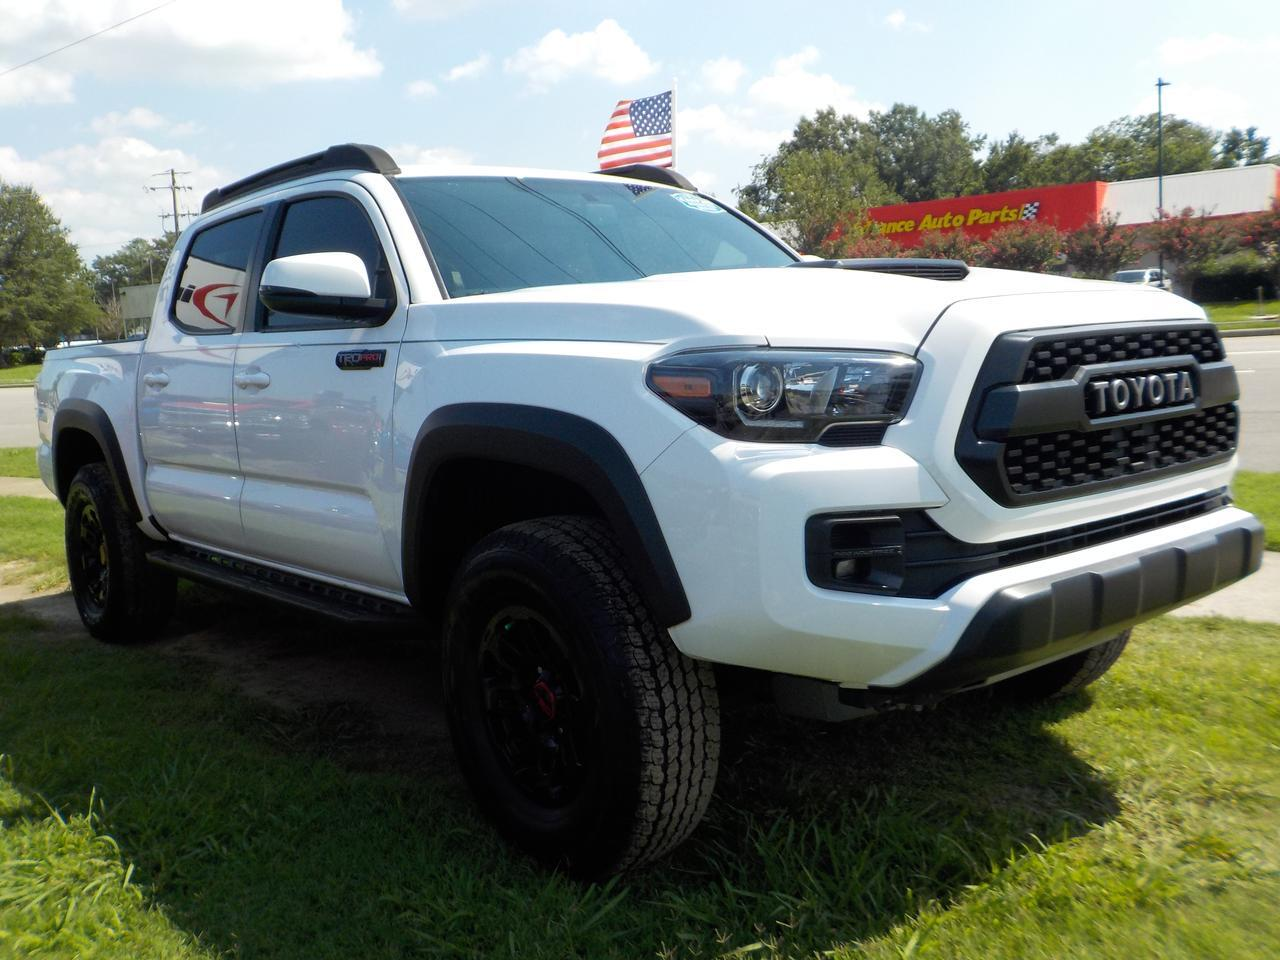 2017 TOYOTA TACOMA TRD PRO DOUBLE CAB 4X4, LEATHER, NAV, BACKUP CAM, PARKING SENSORS, HEATED FRONT SEATS, LOW MILES! Virginia Beach VA